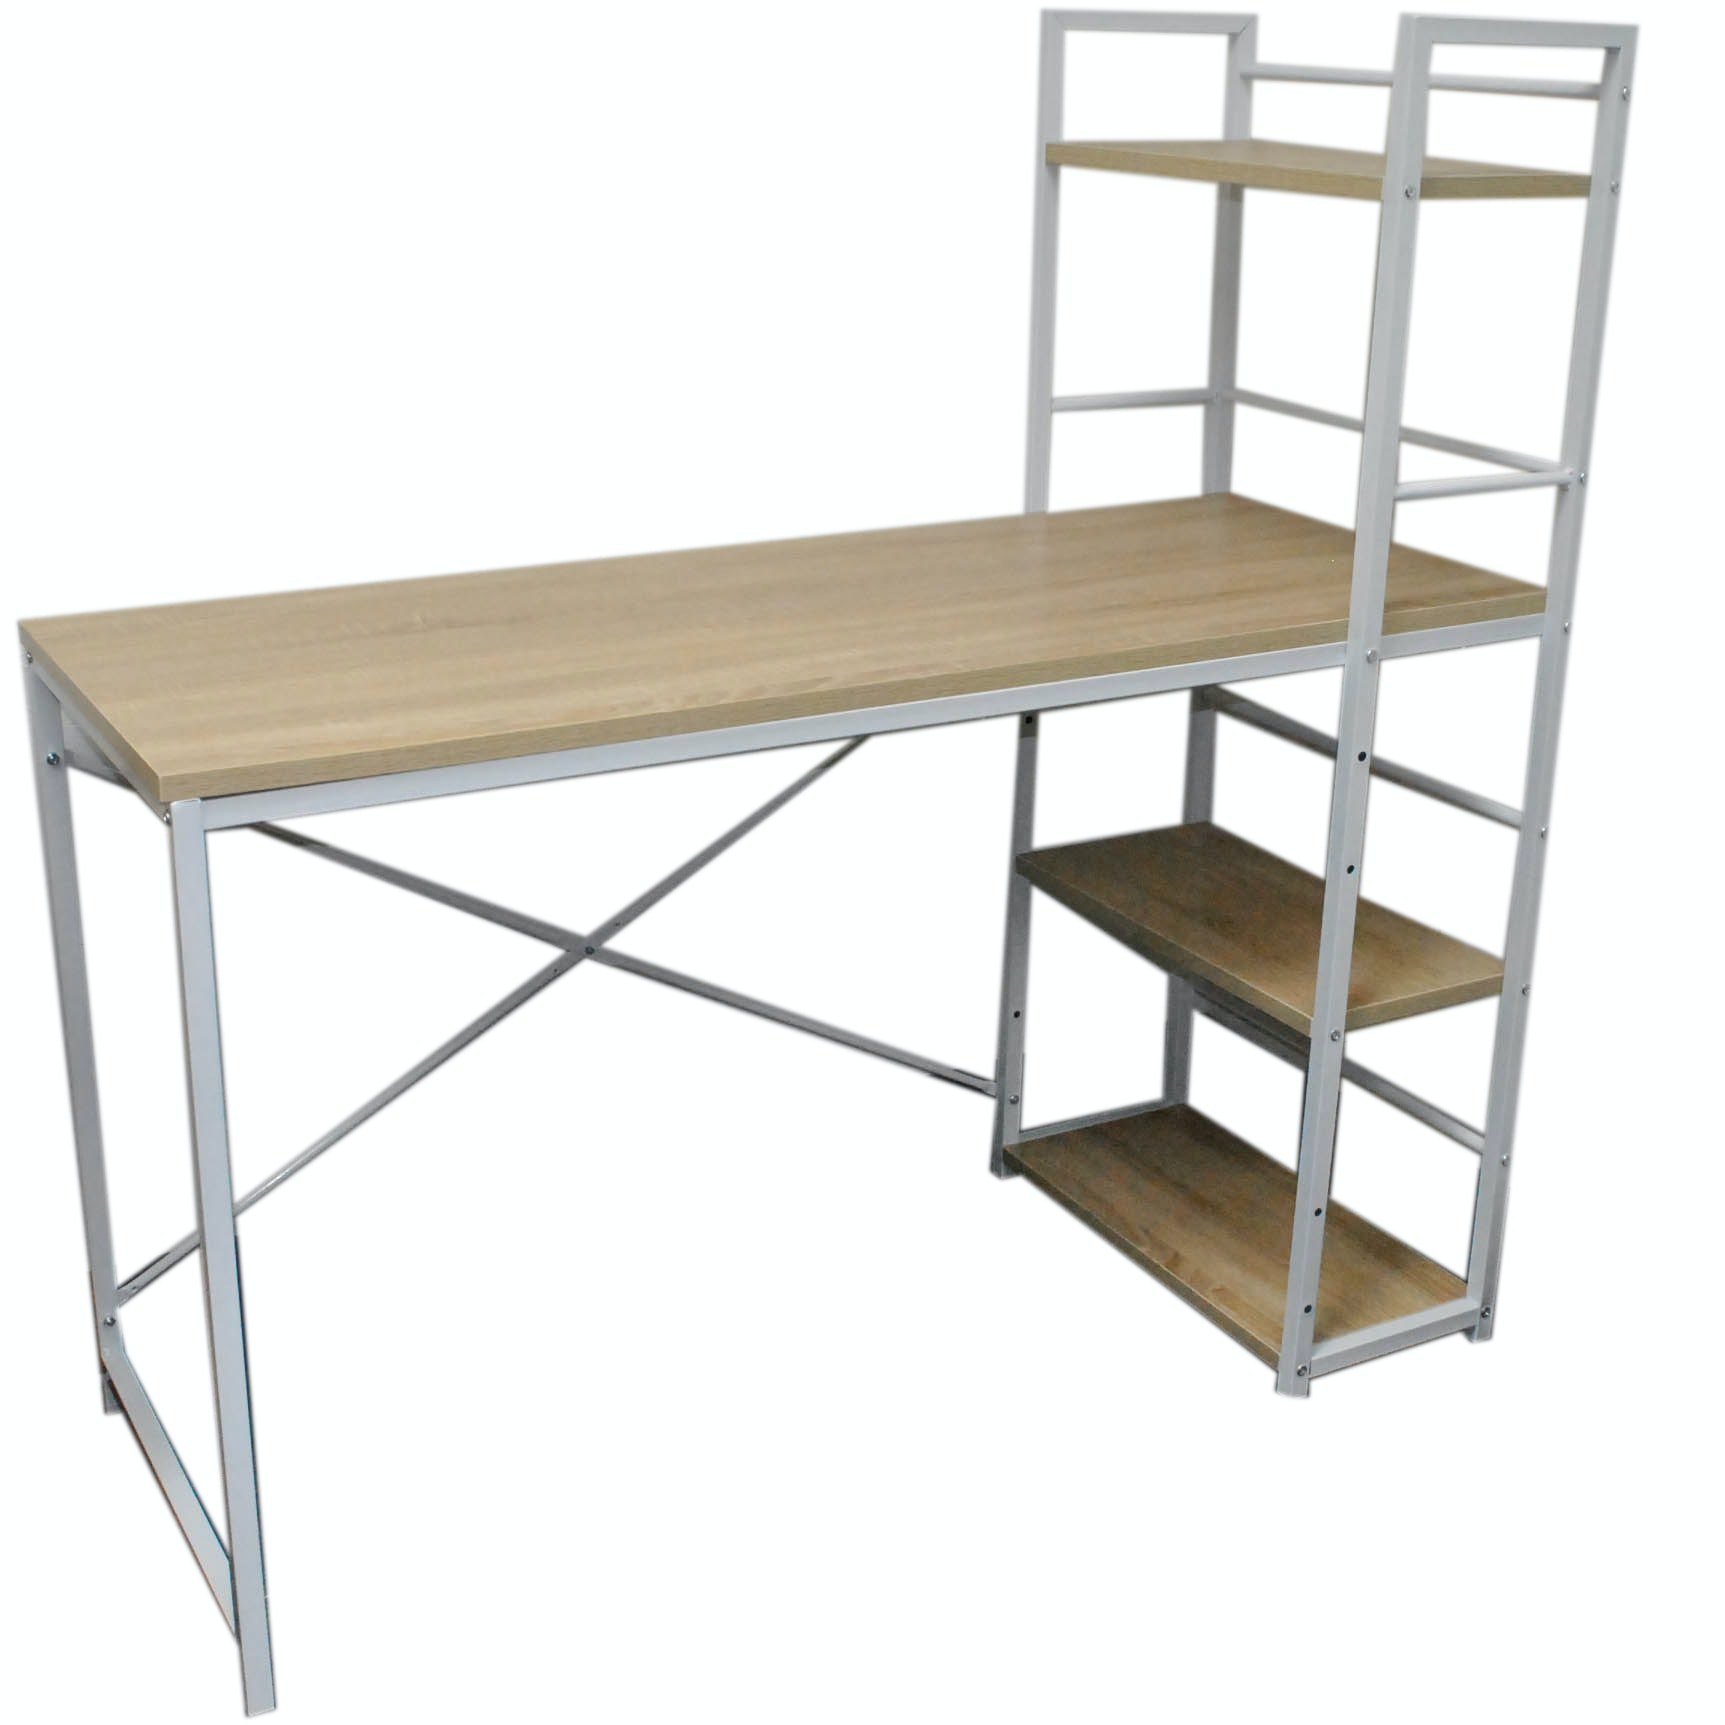 White Metal Office Desk with Composite Wood and Shelving